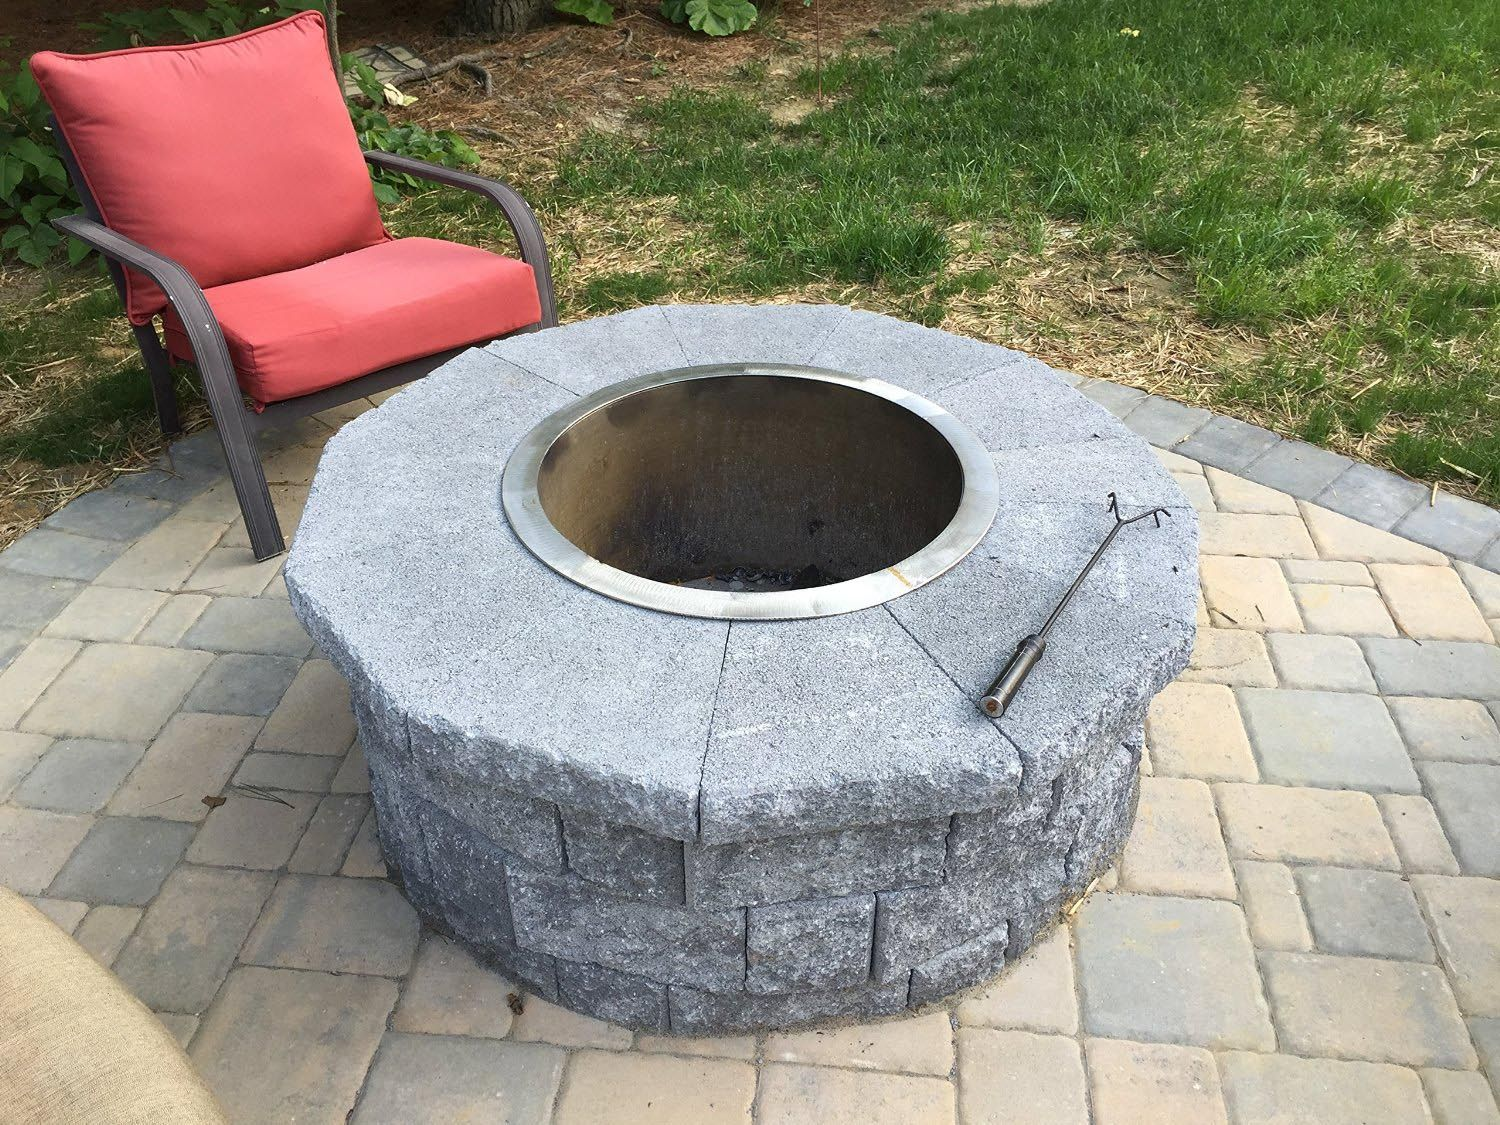 car rim fire pit  fire pit  pinterest  car rims and fire pit  - stainless steel fire pit liner